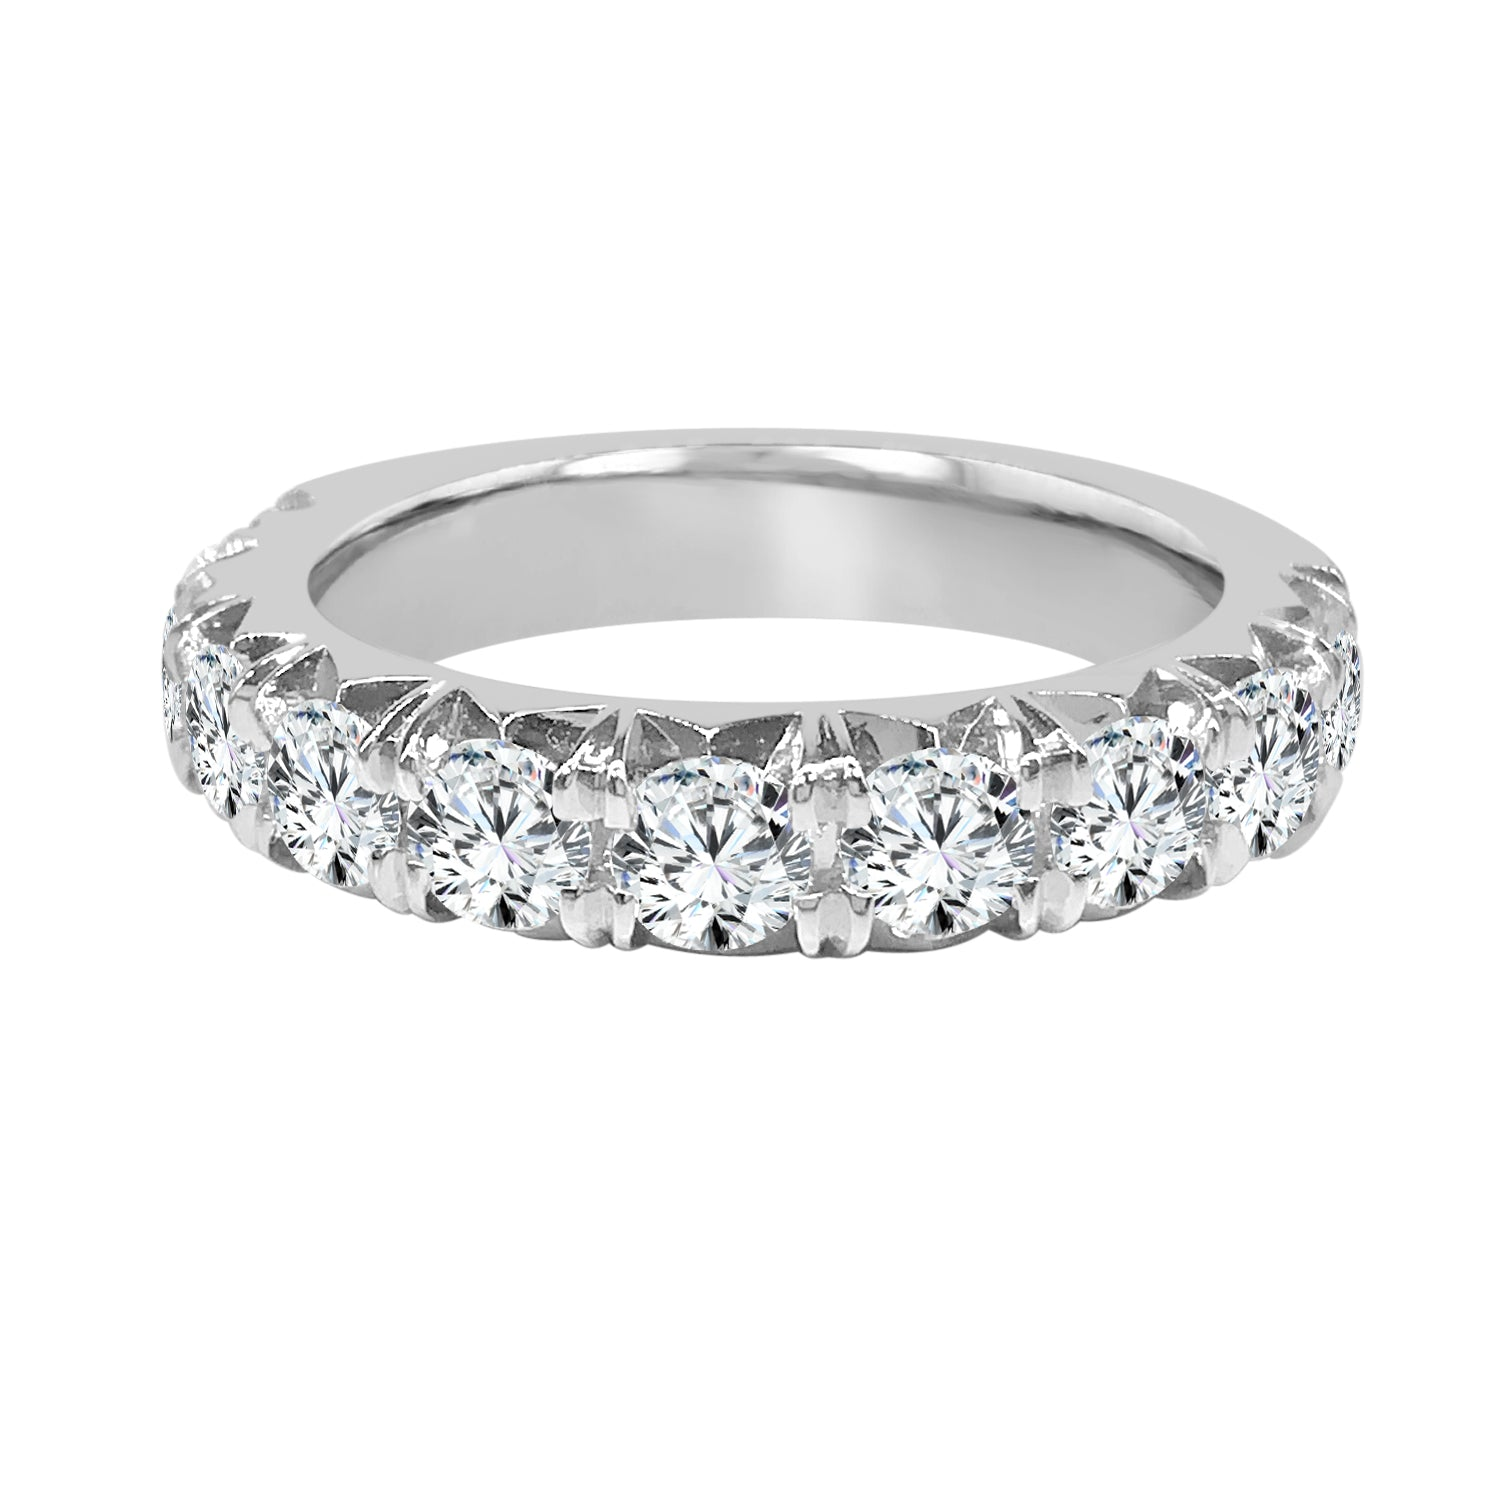 Diamond 1.60 Carat Prong Set Band